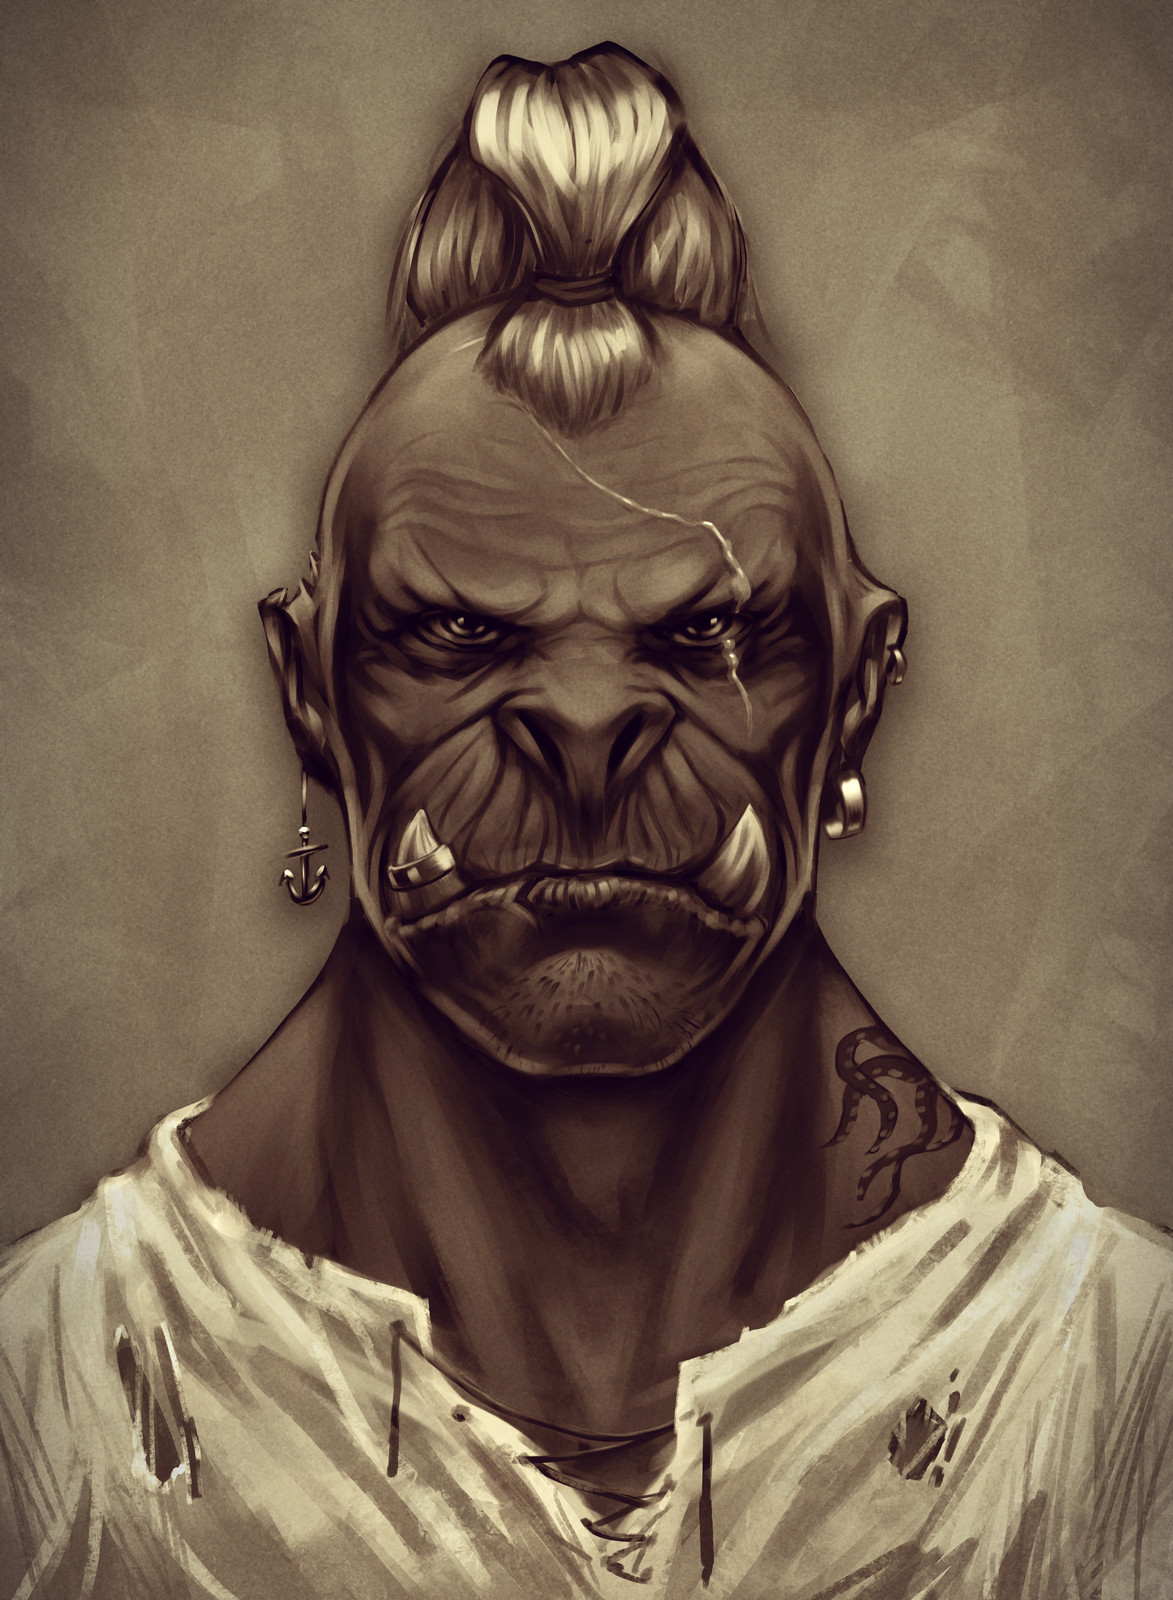 Portrait of an Orc pirate